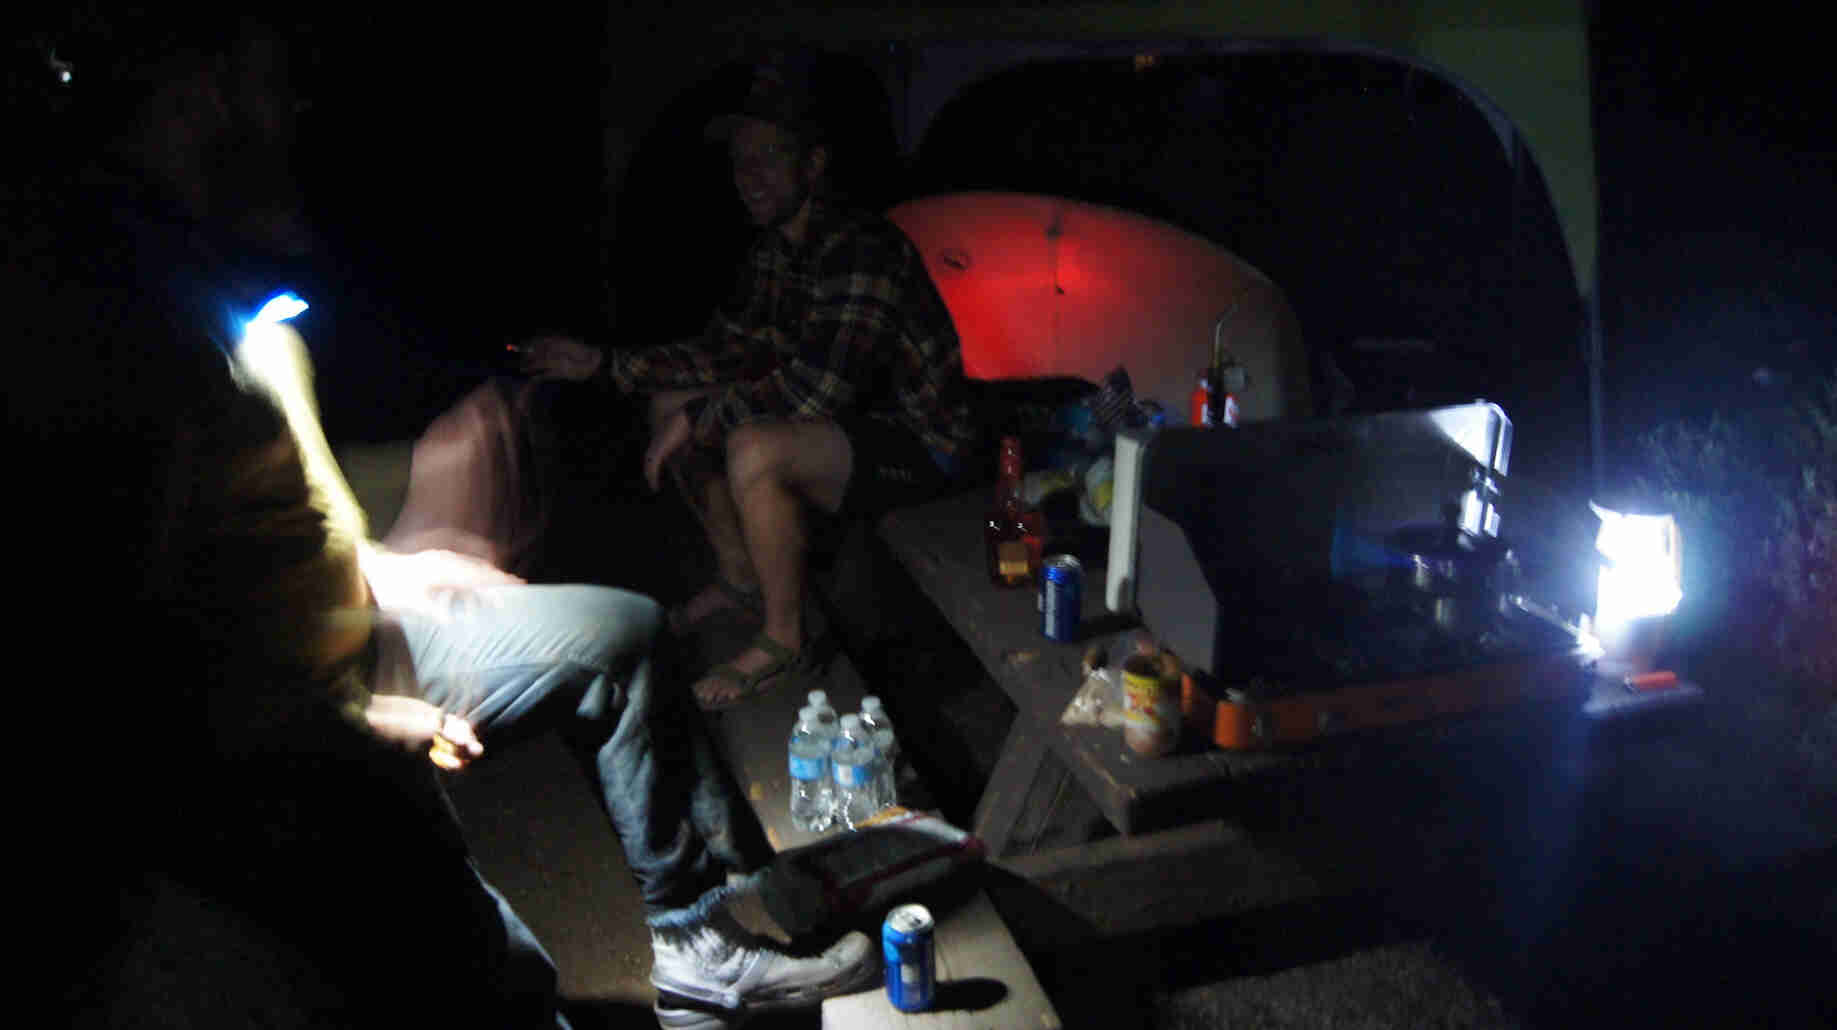 2 people sitting on a picnic table, at a campsite at night, with a tent in the bacground